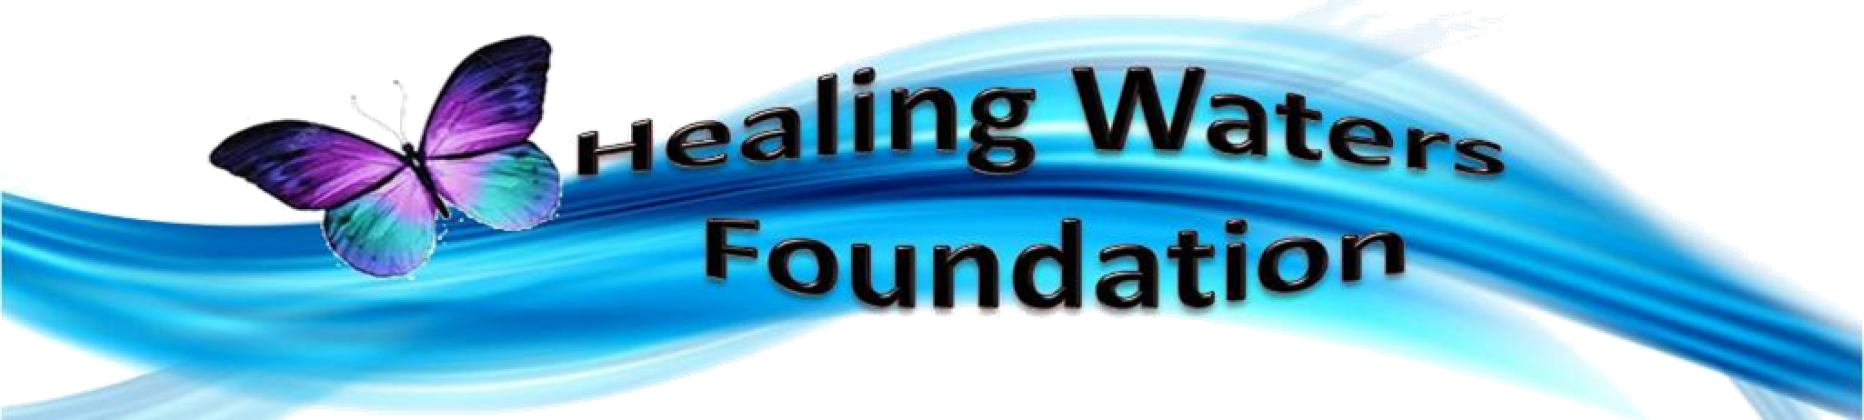 Healing Waters Foundation Heade Logo